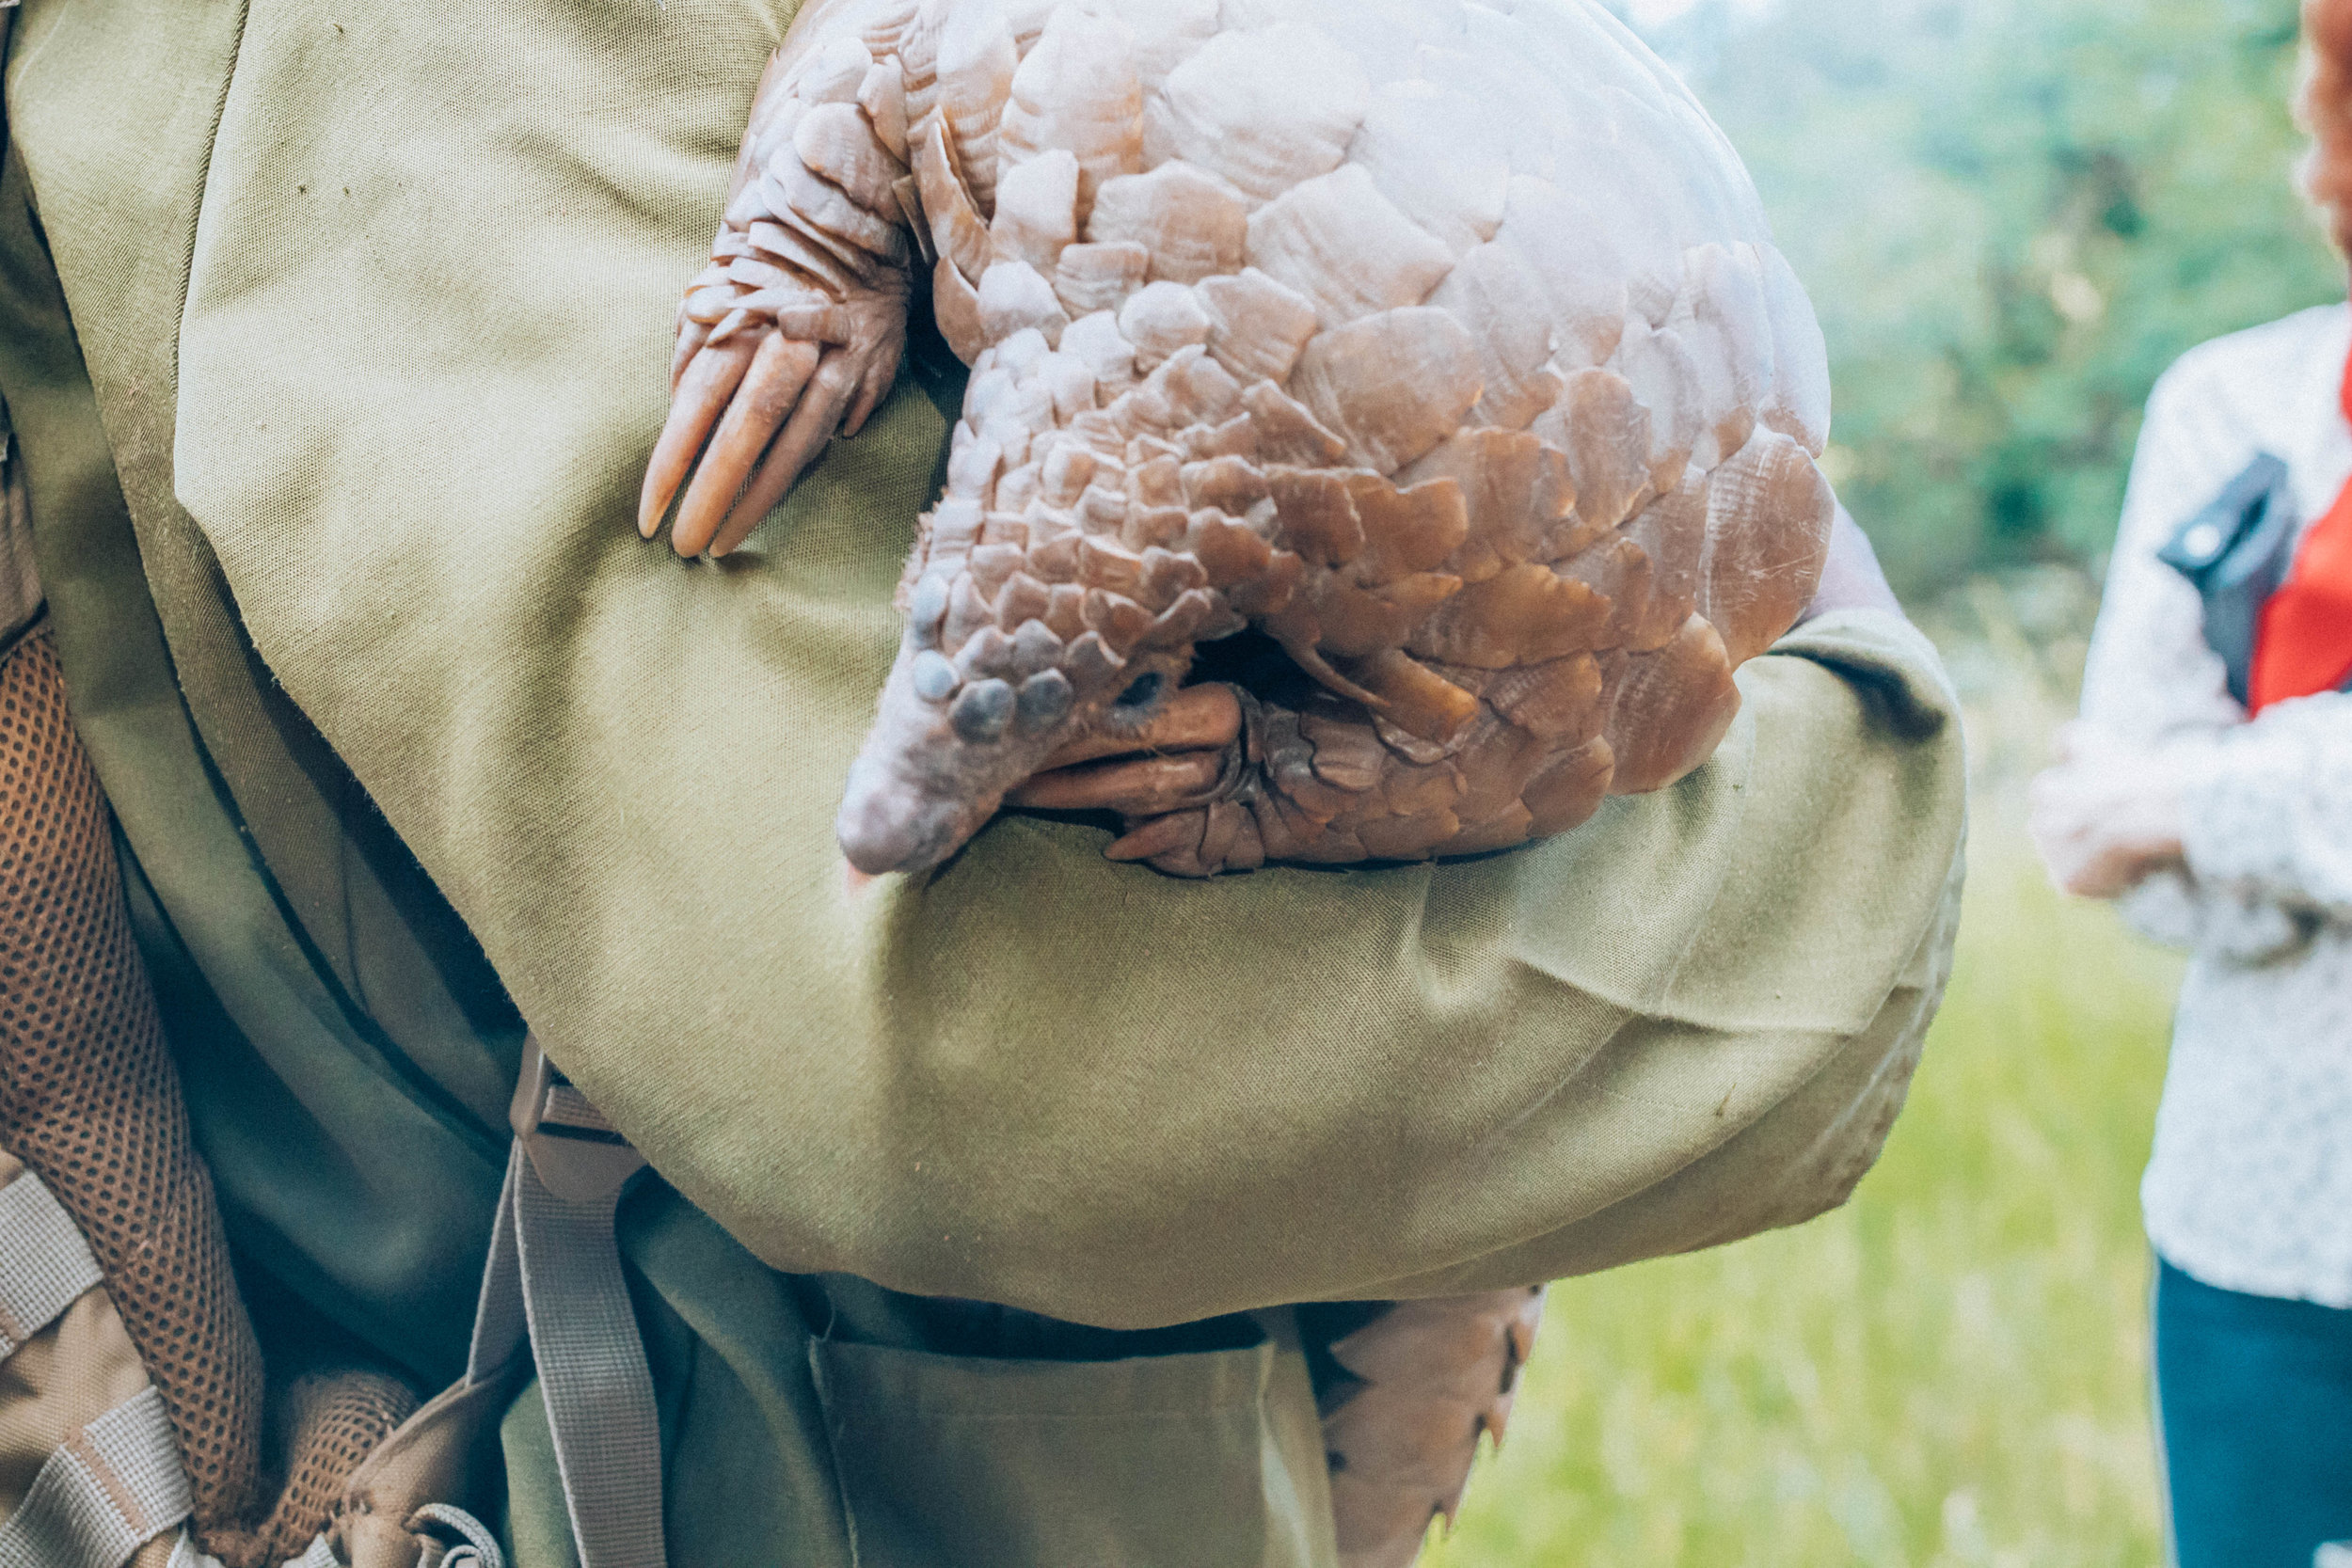 The very rare and endangered pangolin